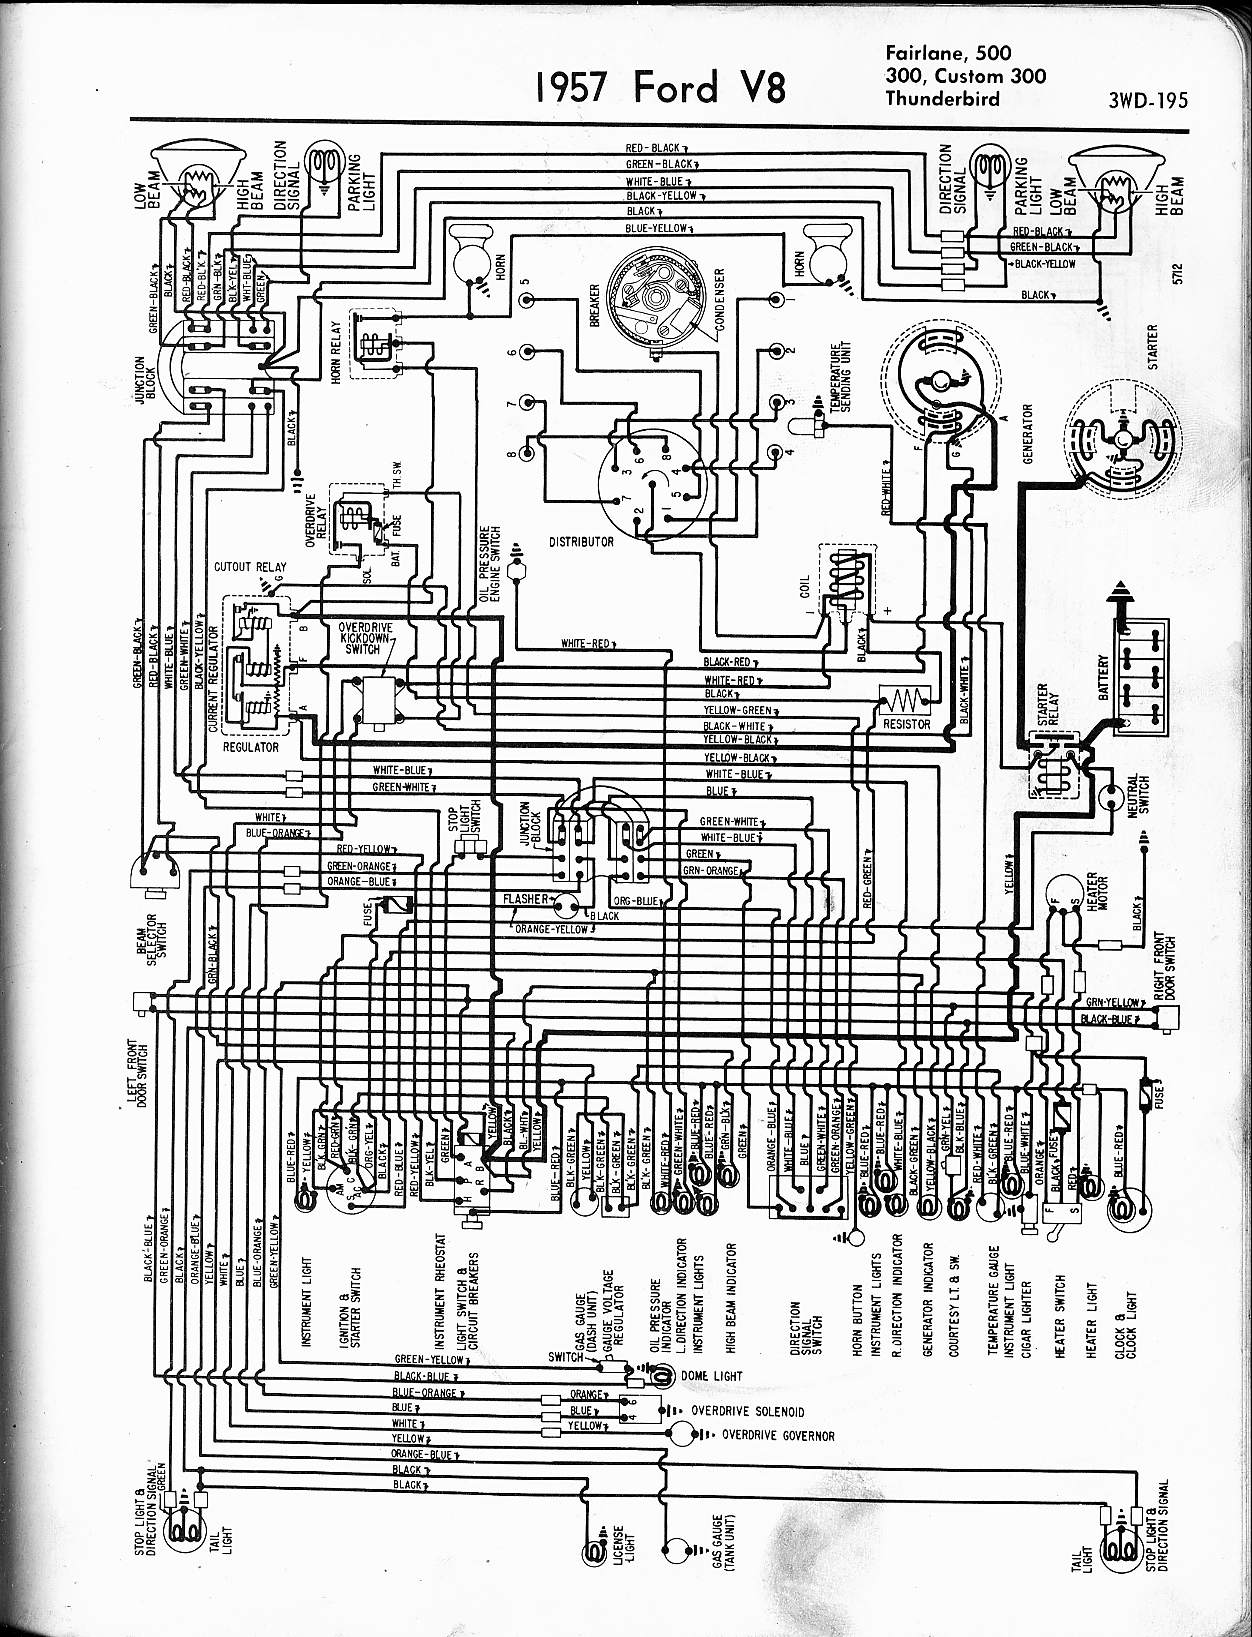 Ford Crown Victoria Fairlane V on 57 Chevy Wiring Schematic